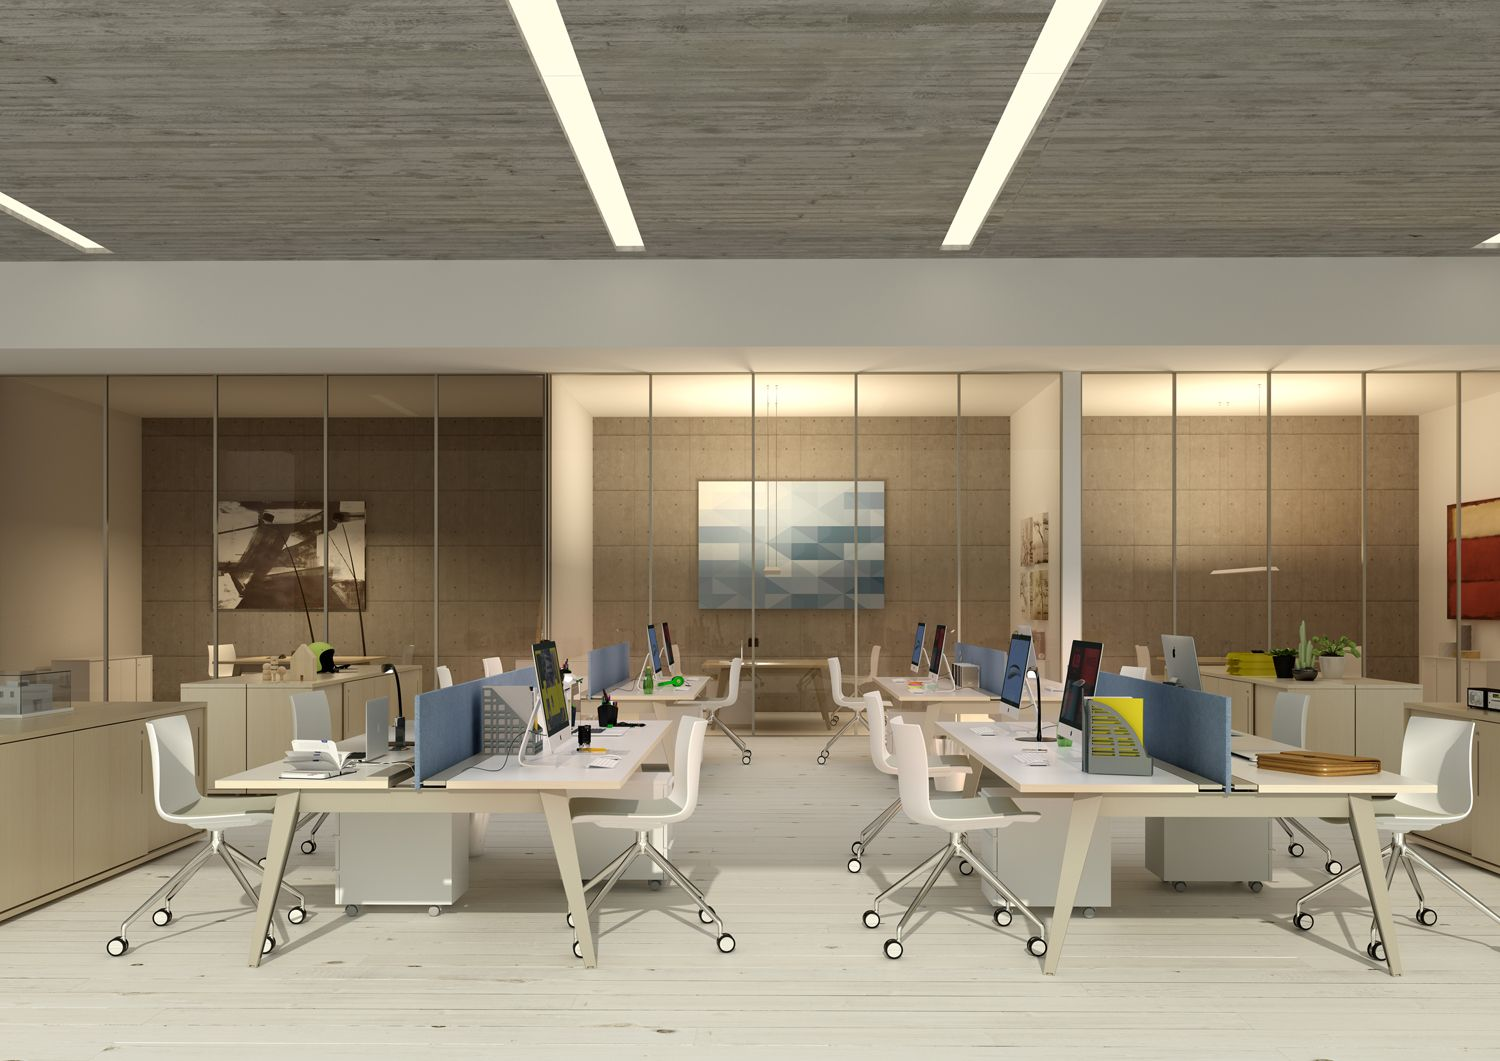 Office furniture render Corporate office design, Office